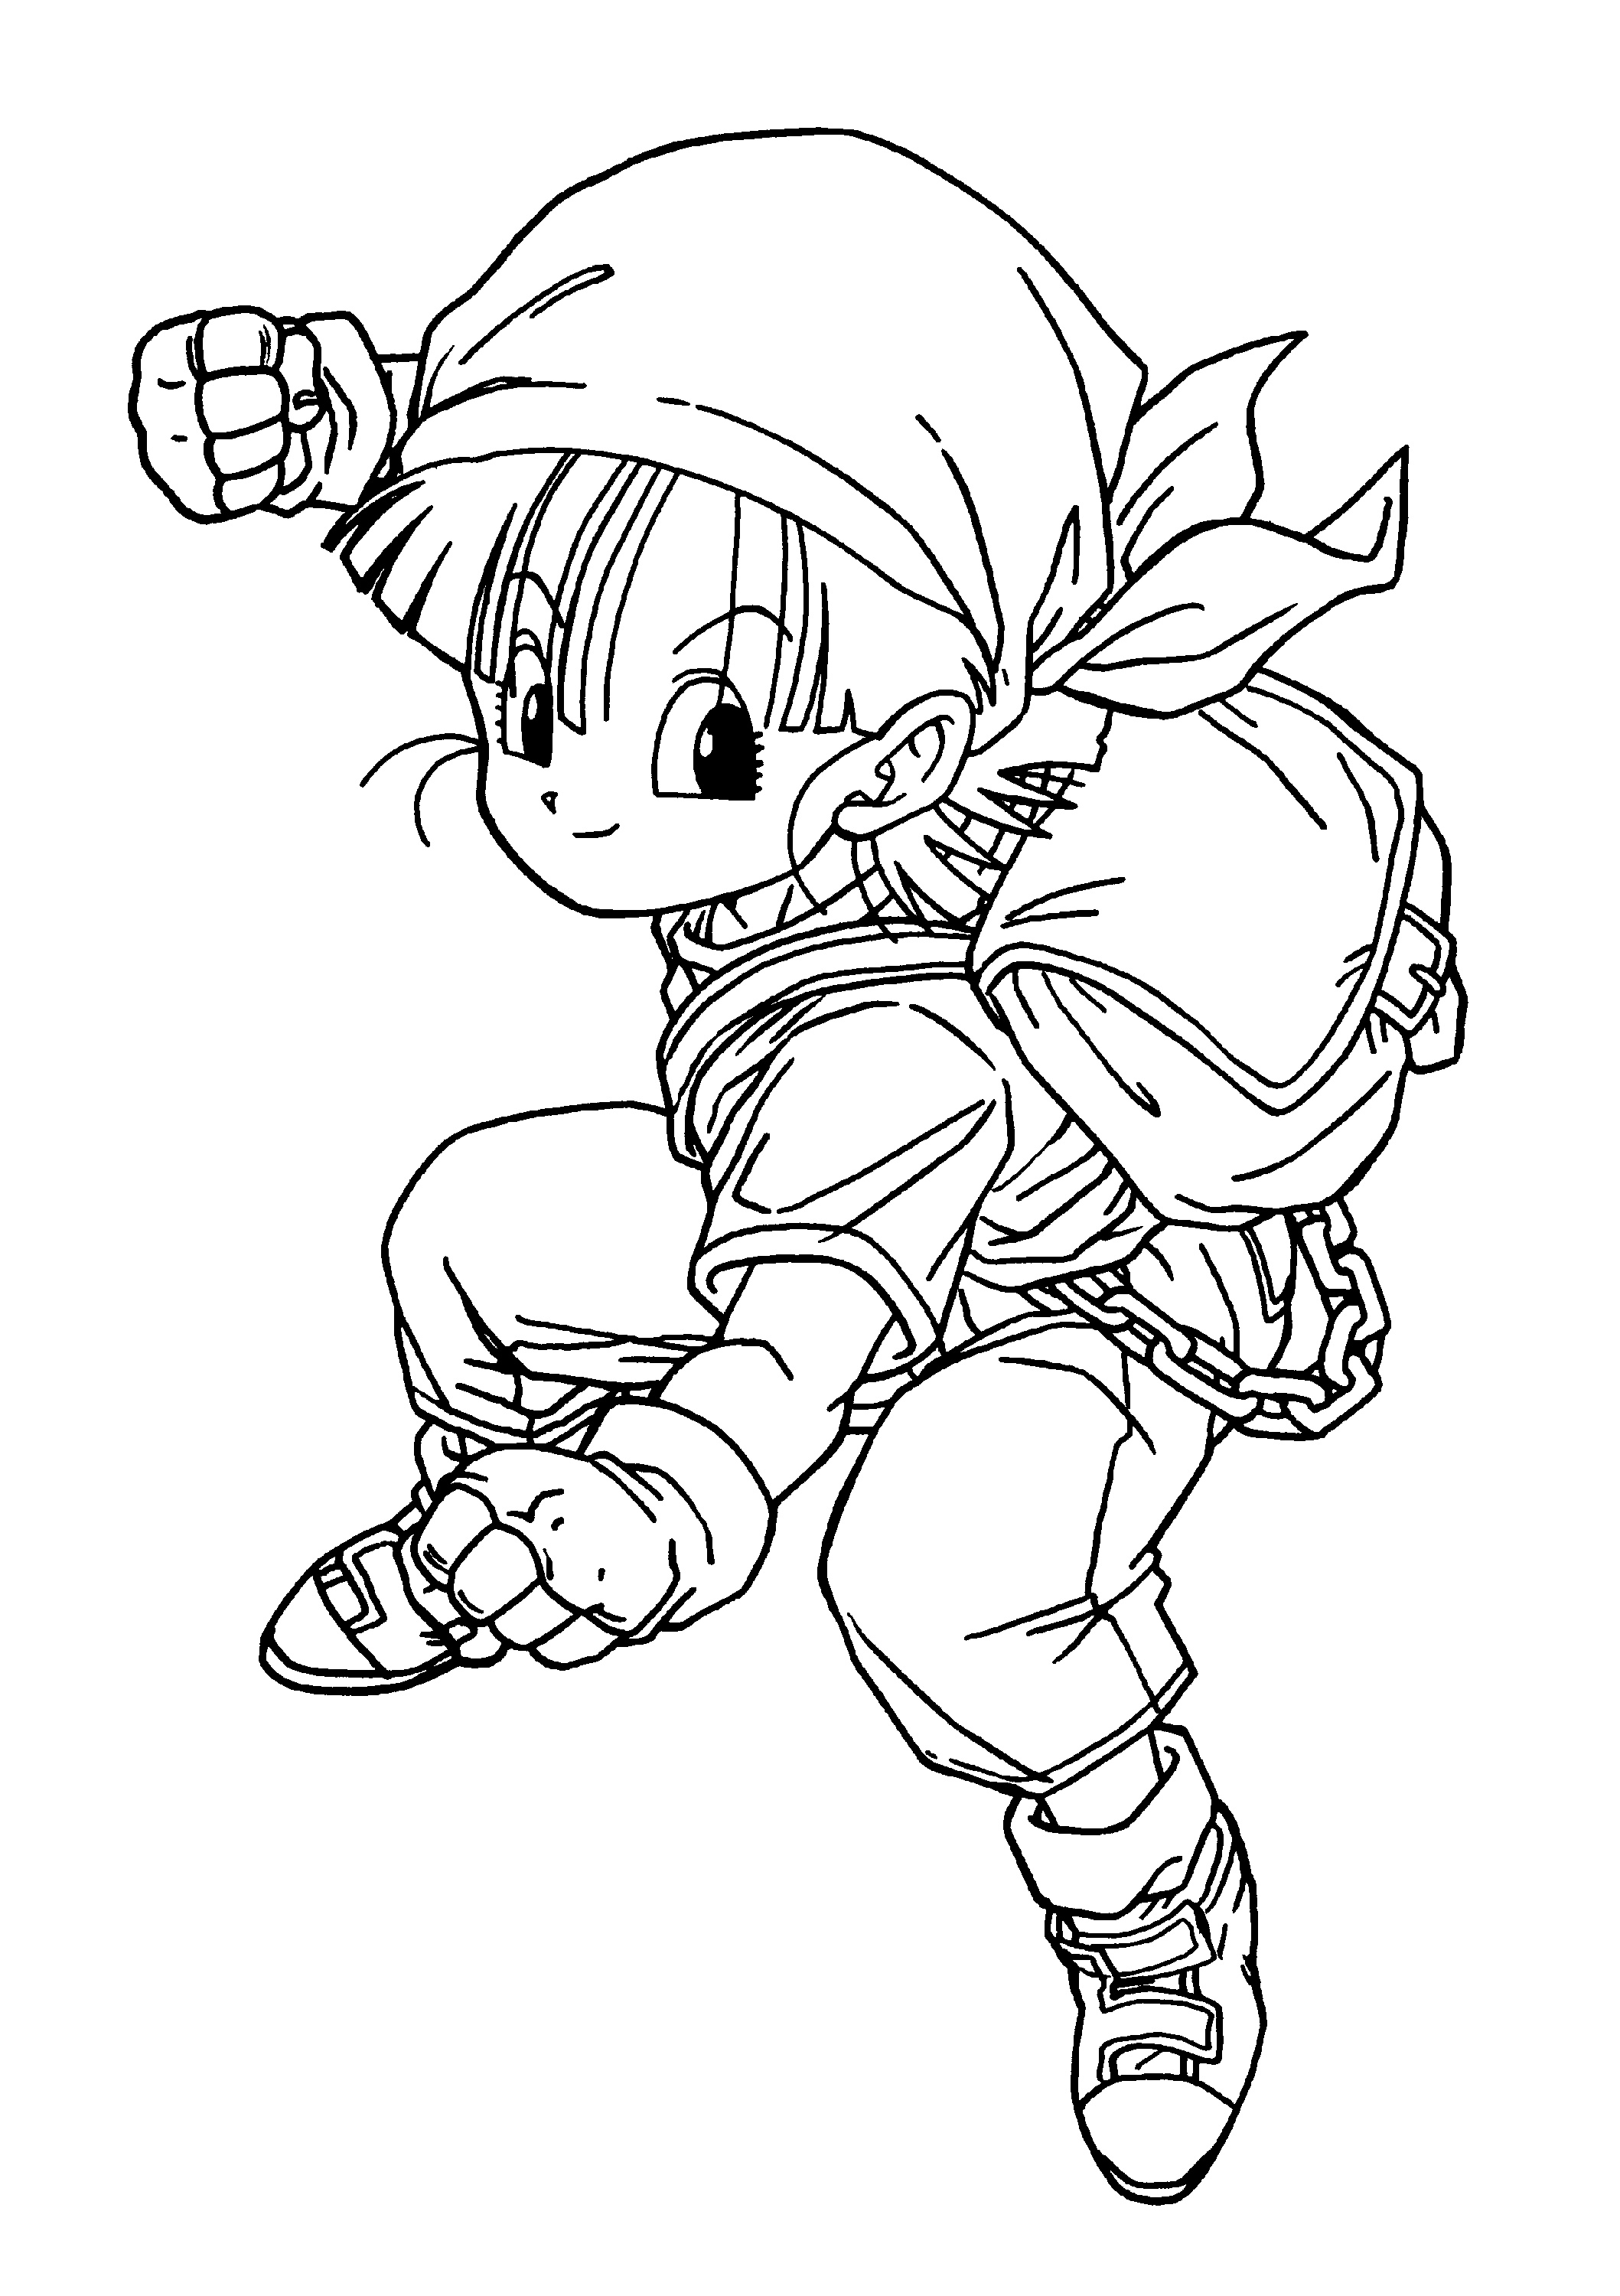 coloring pictures dragon ball z dragon ball coloring pages best coloring pages for kids ball z pictures dragon coloring